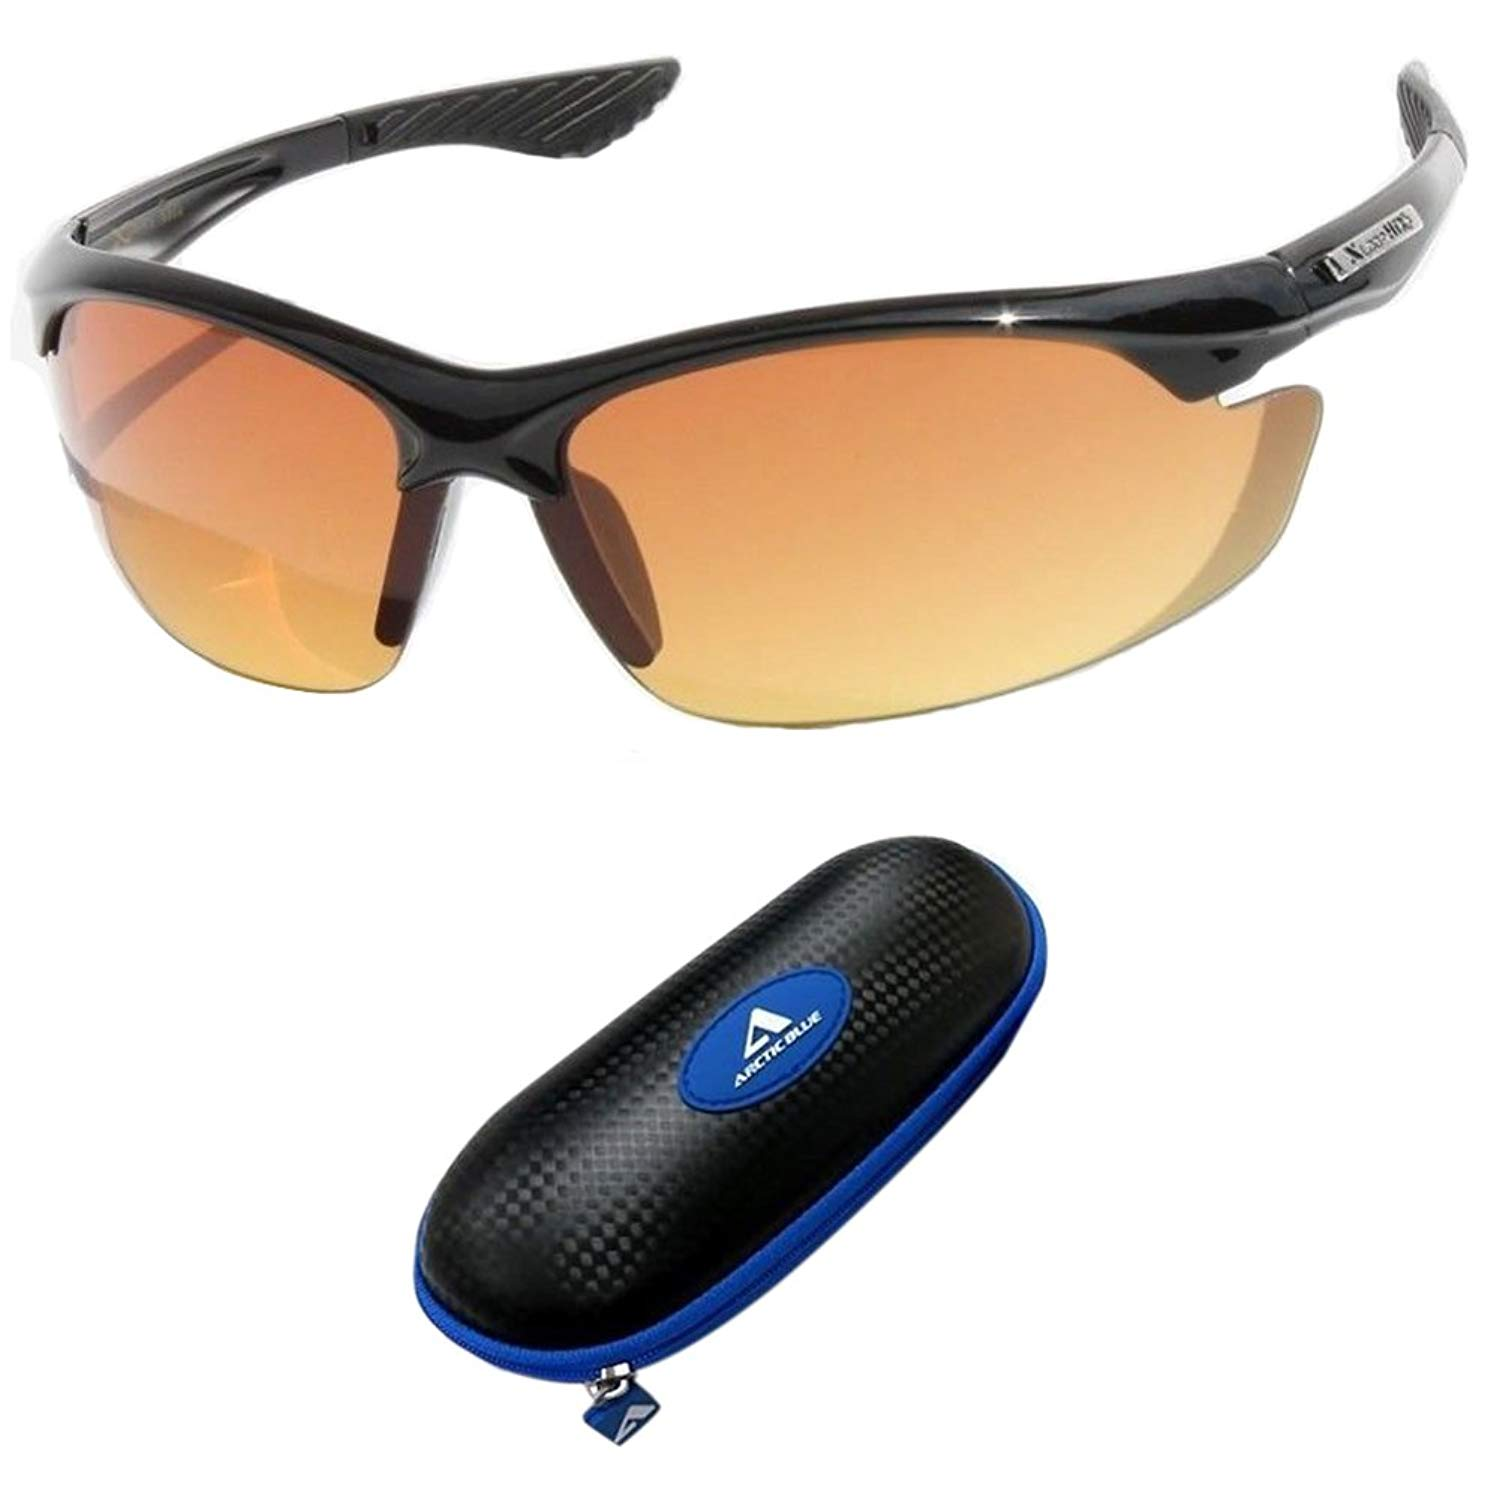 cba539558b Get Quotations · Sunglasses bifocal Black with Blue Case SPORT WRAP HD NIGHT  DRIVING VISION SUNGLASSES YELLOW HD GLASSES